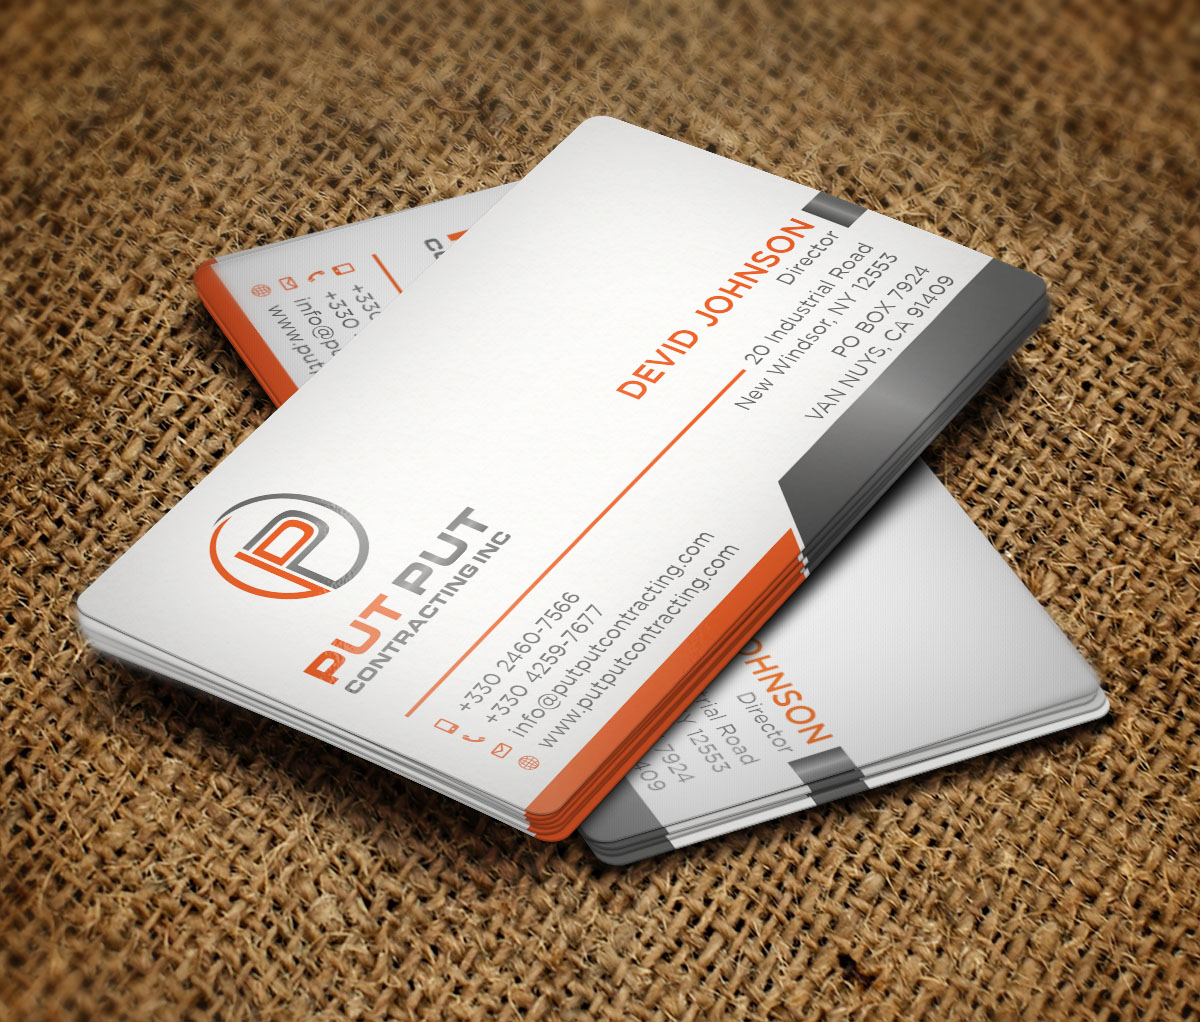 Bold professional telecommunications business card design for put bold professional telecommunications business card design for put put contracting inc in canada design 11764088 reheart Choice Image